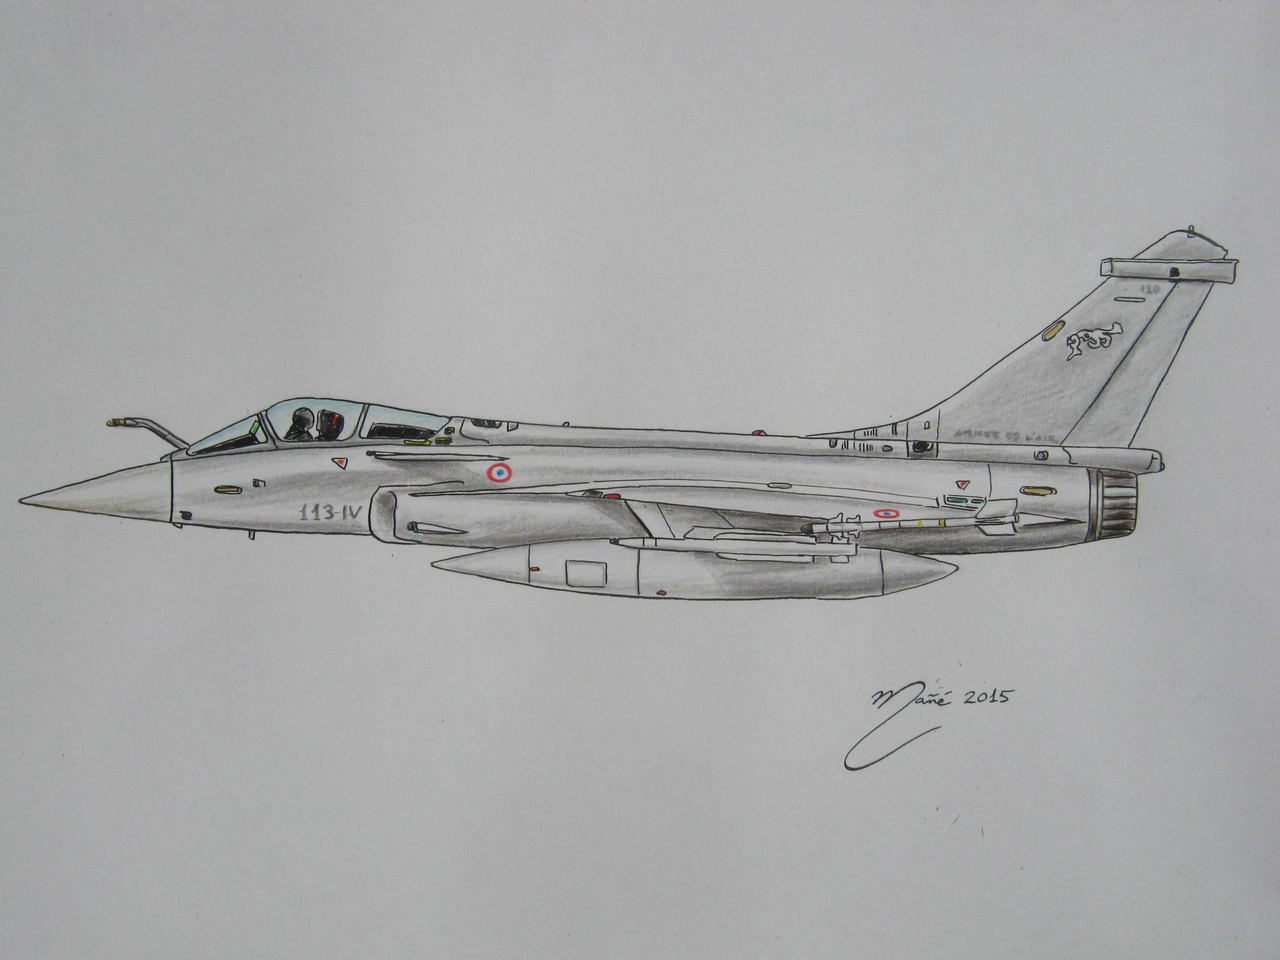 Combat aviation: The Dassault Rafale  A French twin-engine